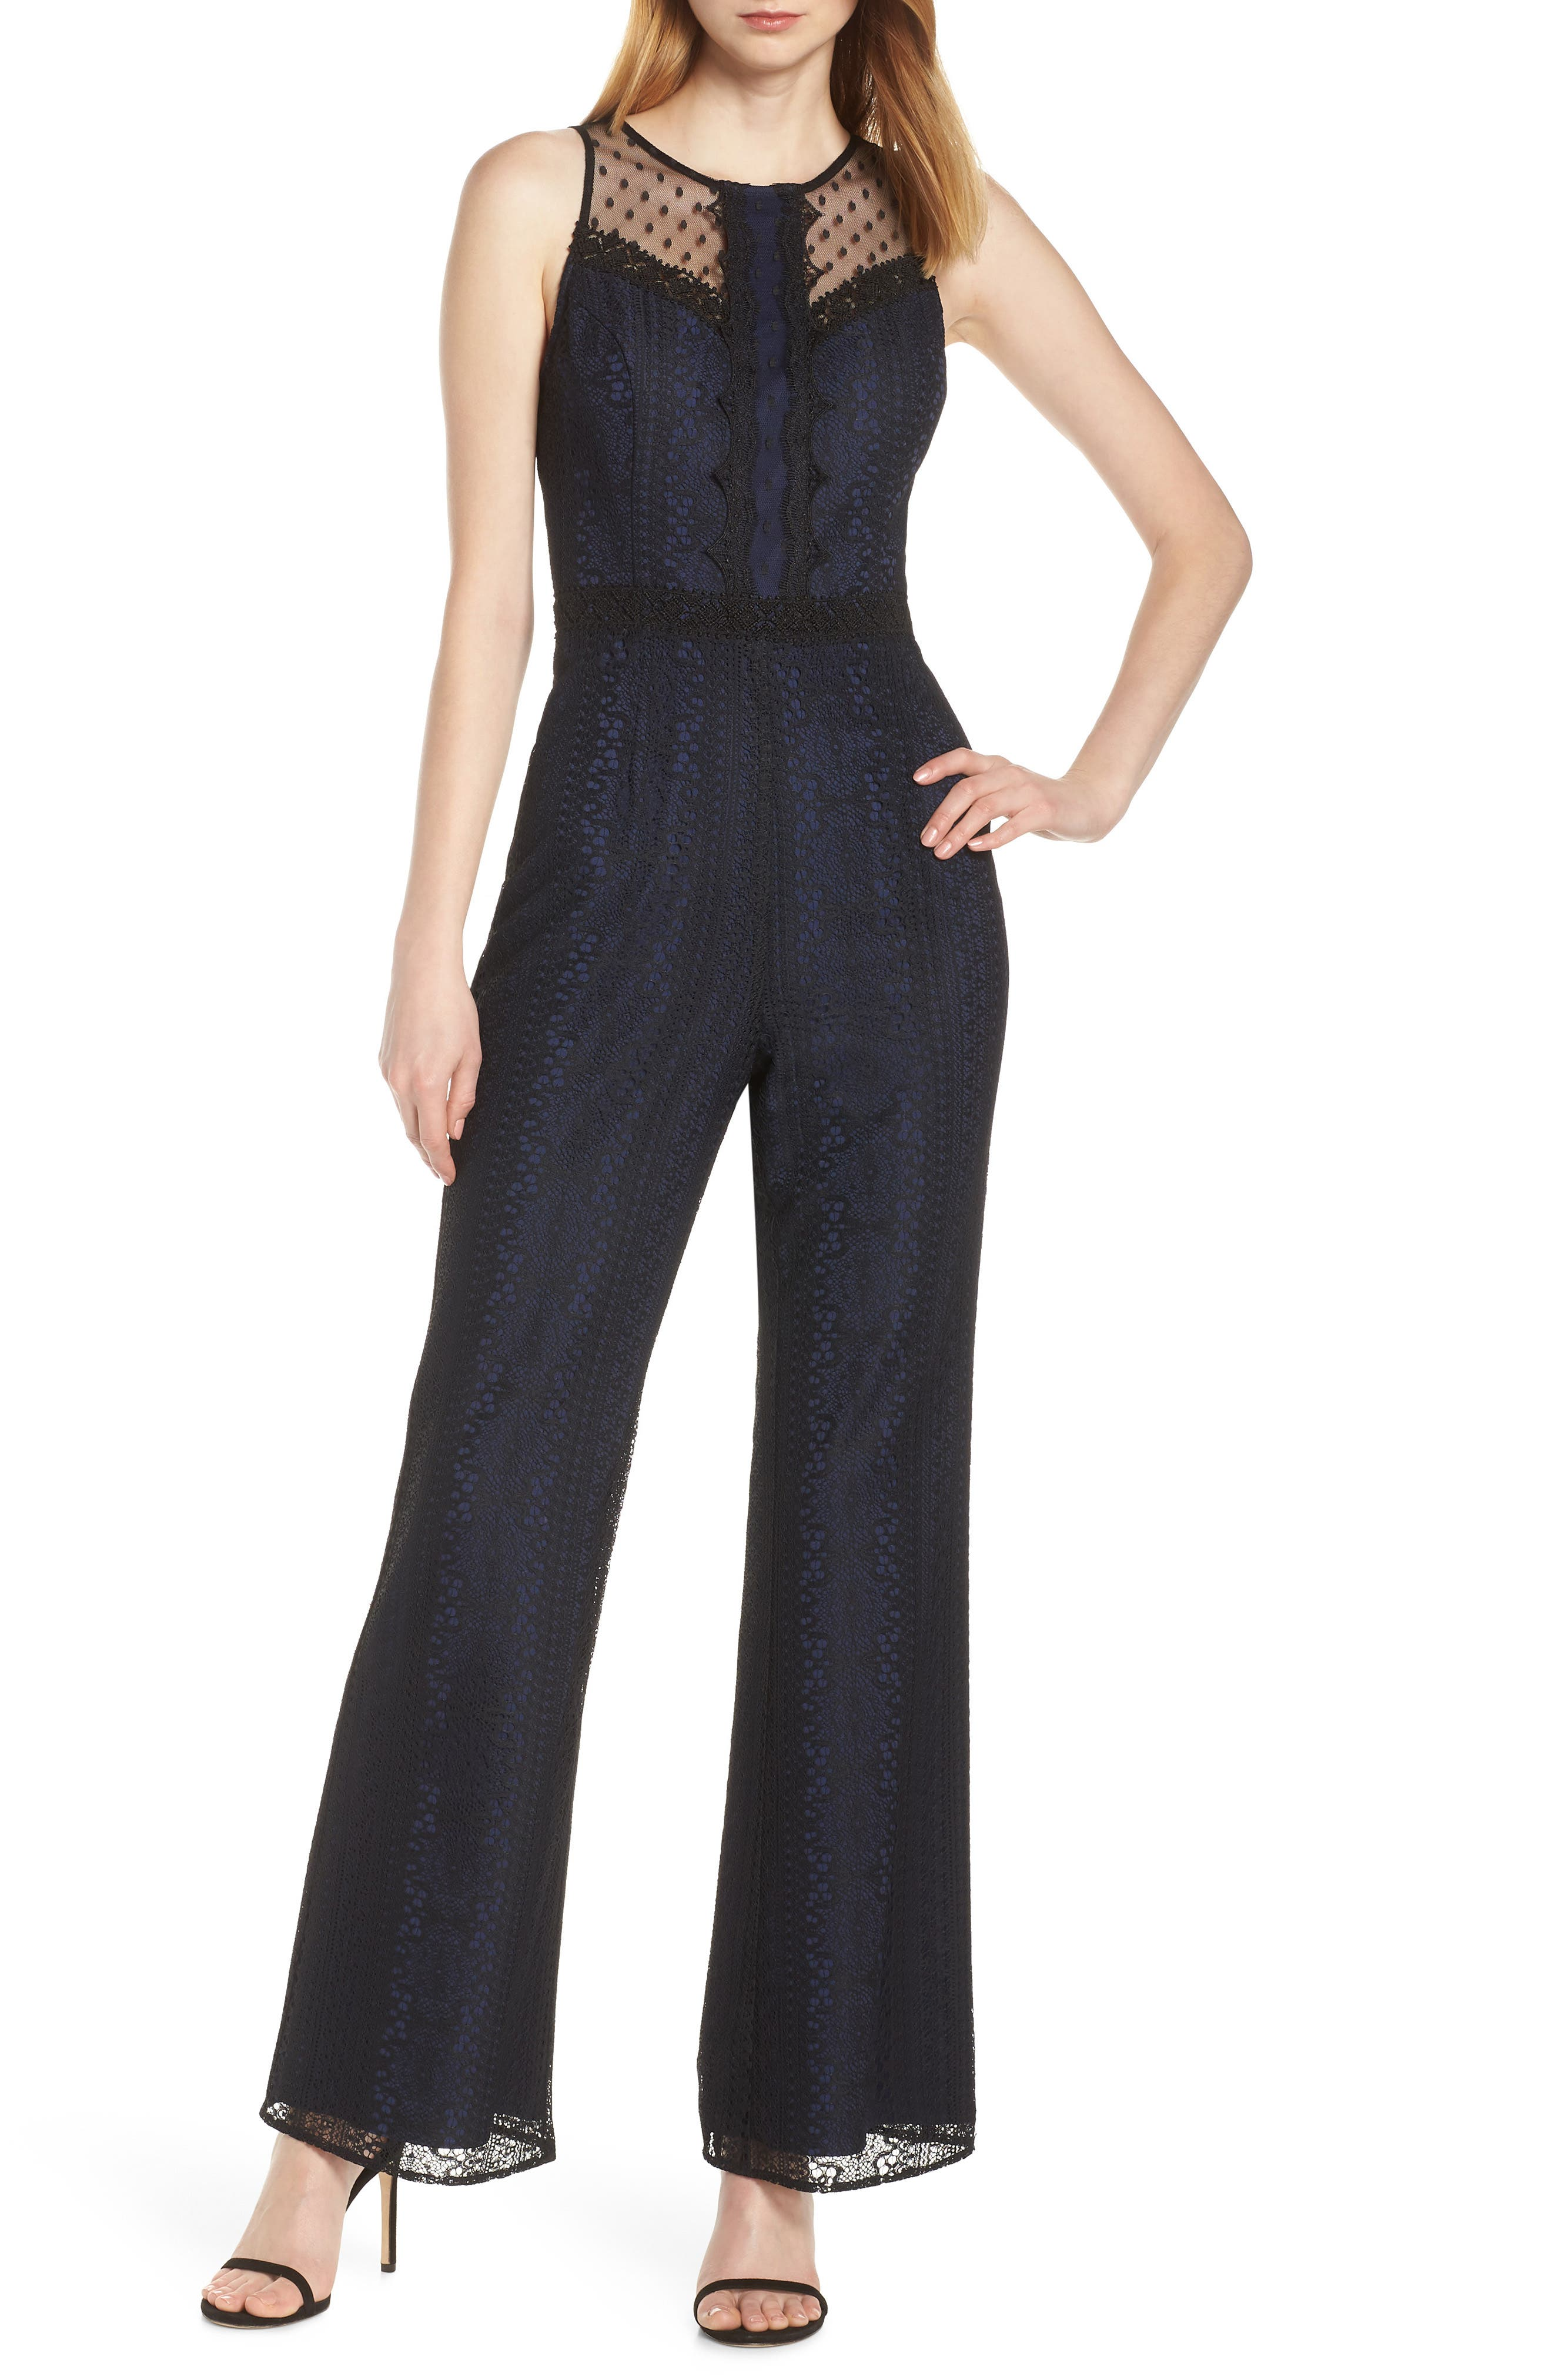 Harlyn Illusion Neck Lace Jumpsuit, Black